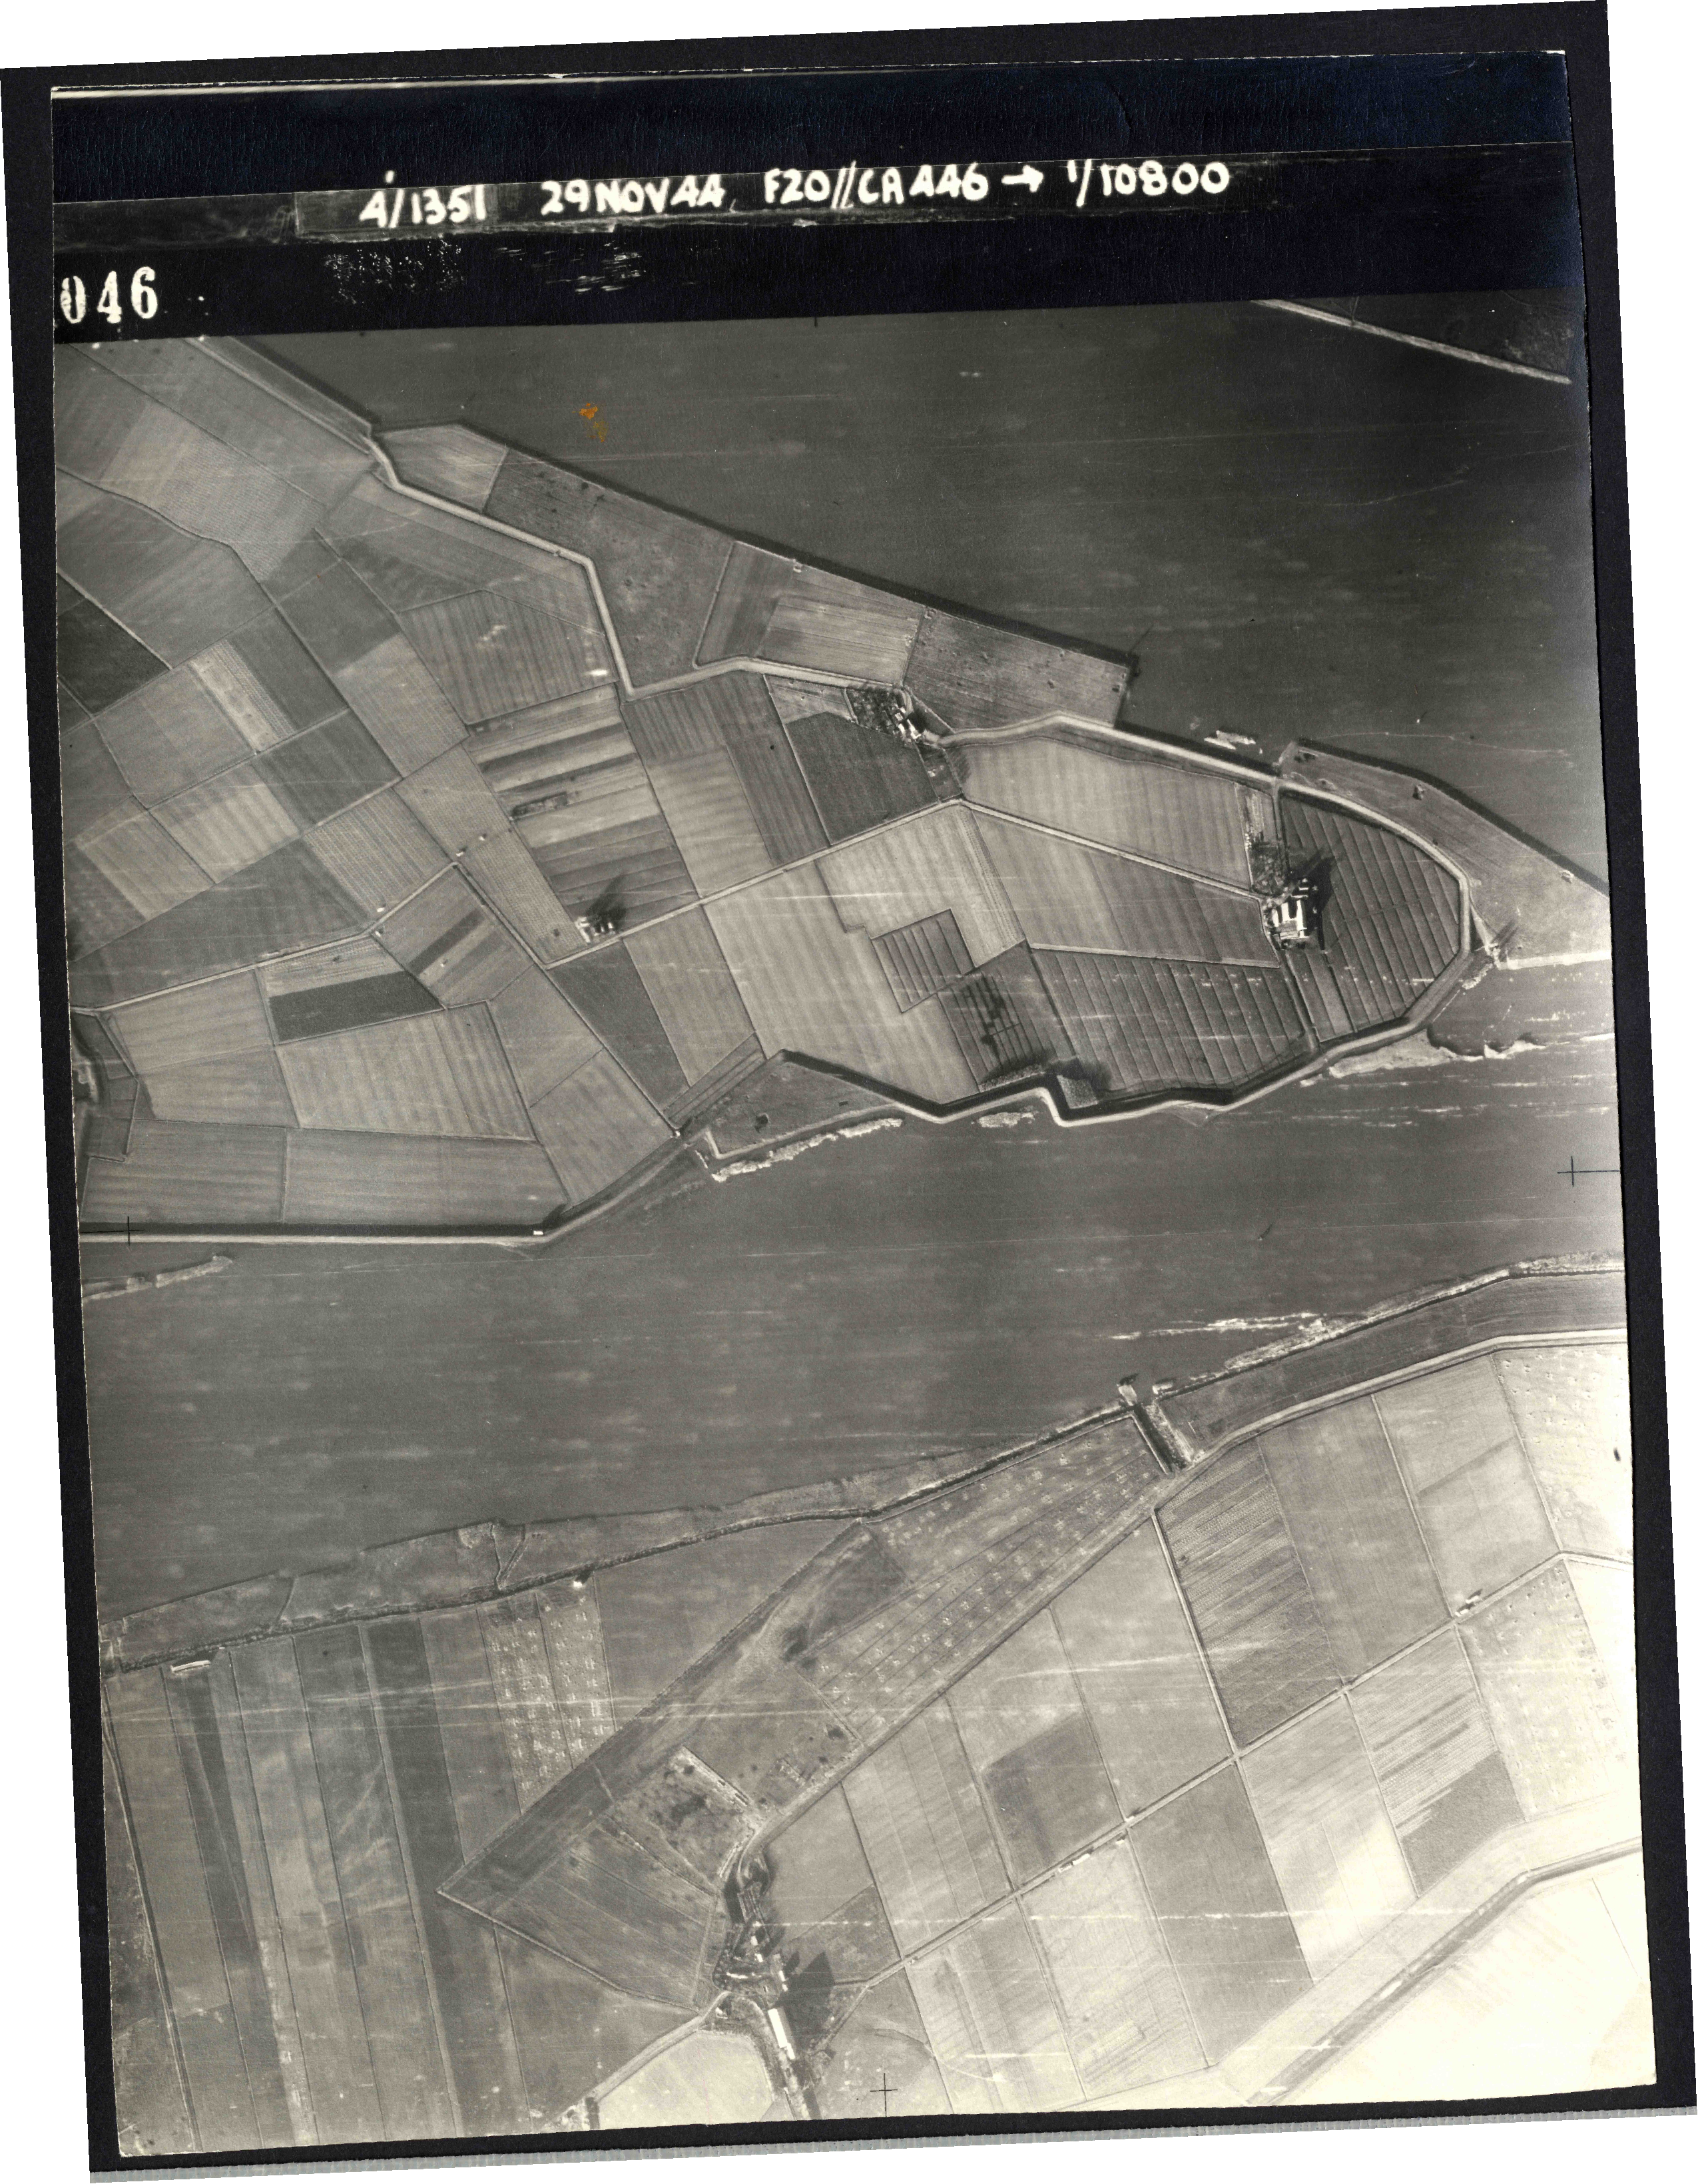 Collection RAF aerial photos 1940-1945 - flight 045, run 03, photo 3046